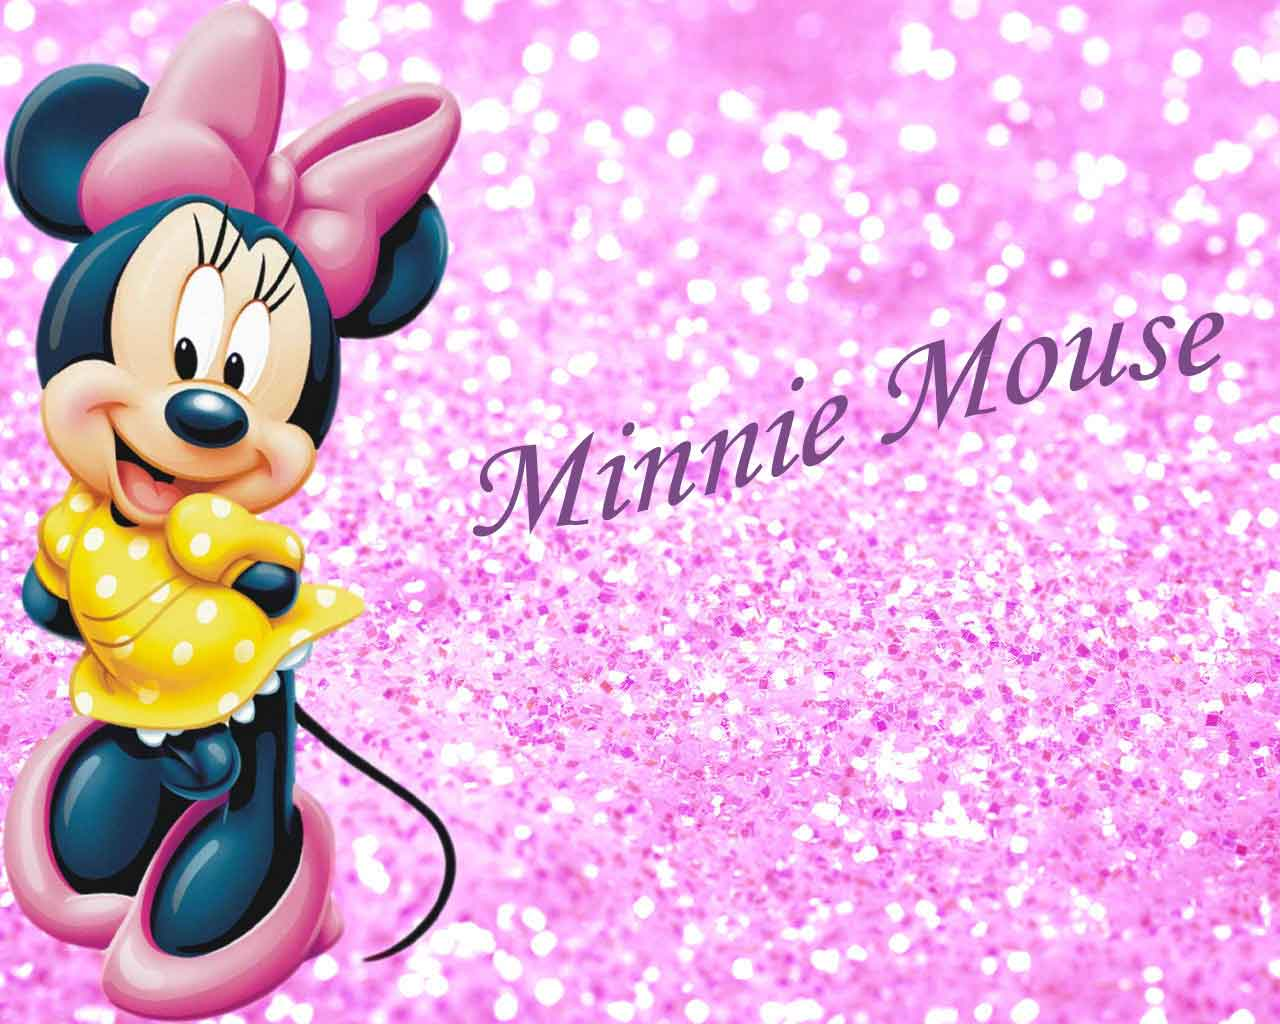 Minnie Mouse Disney Wallpapers - Top